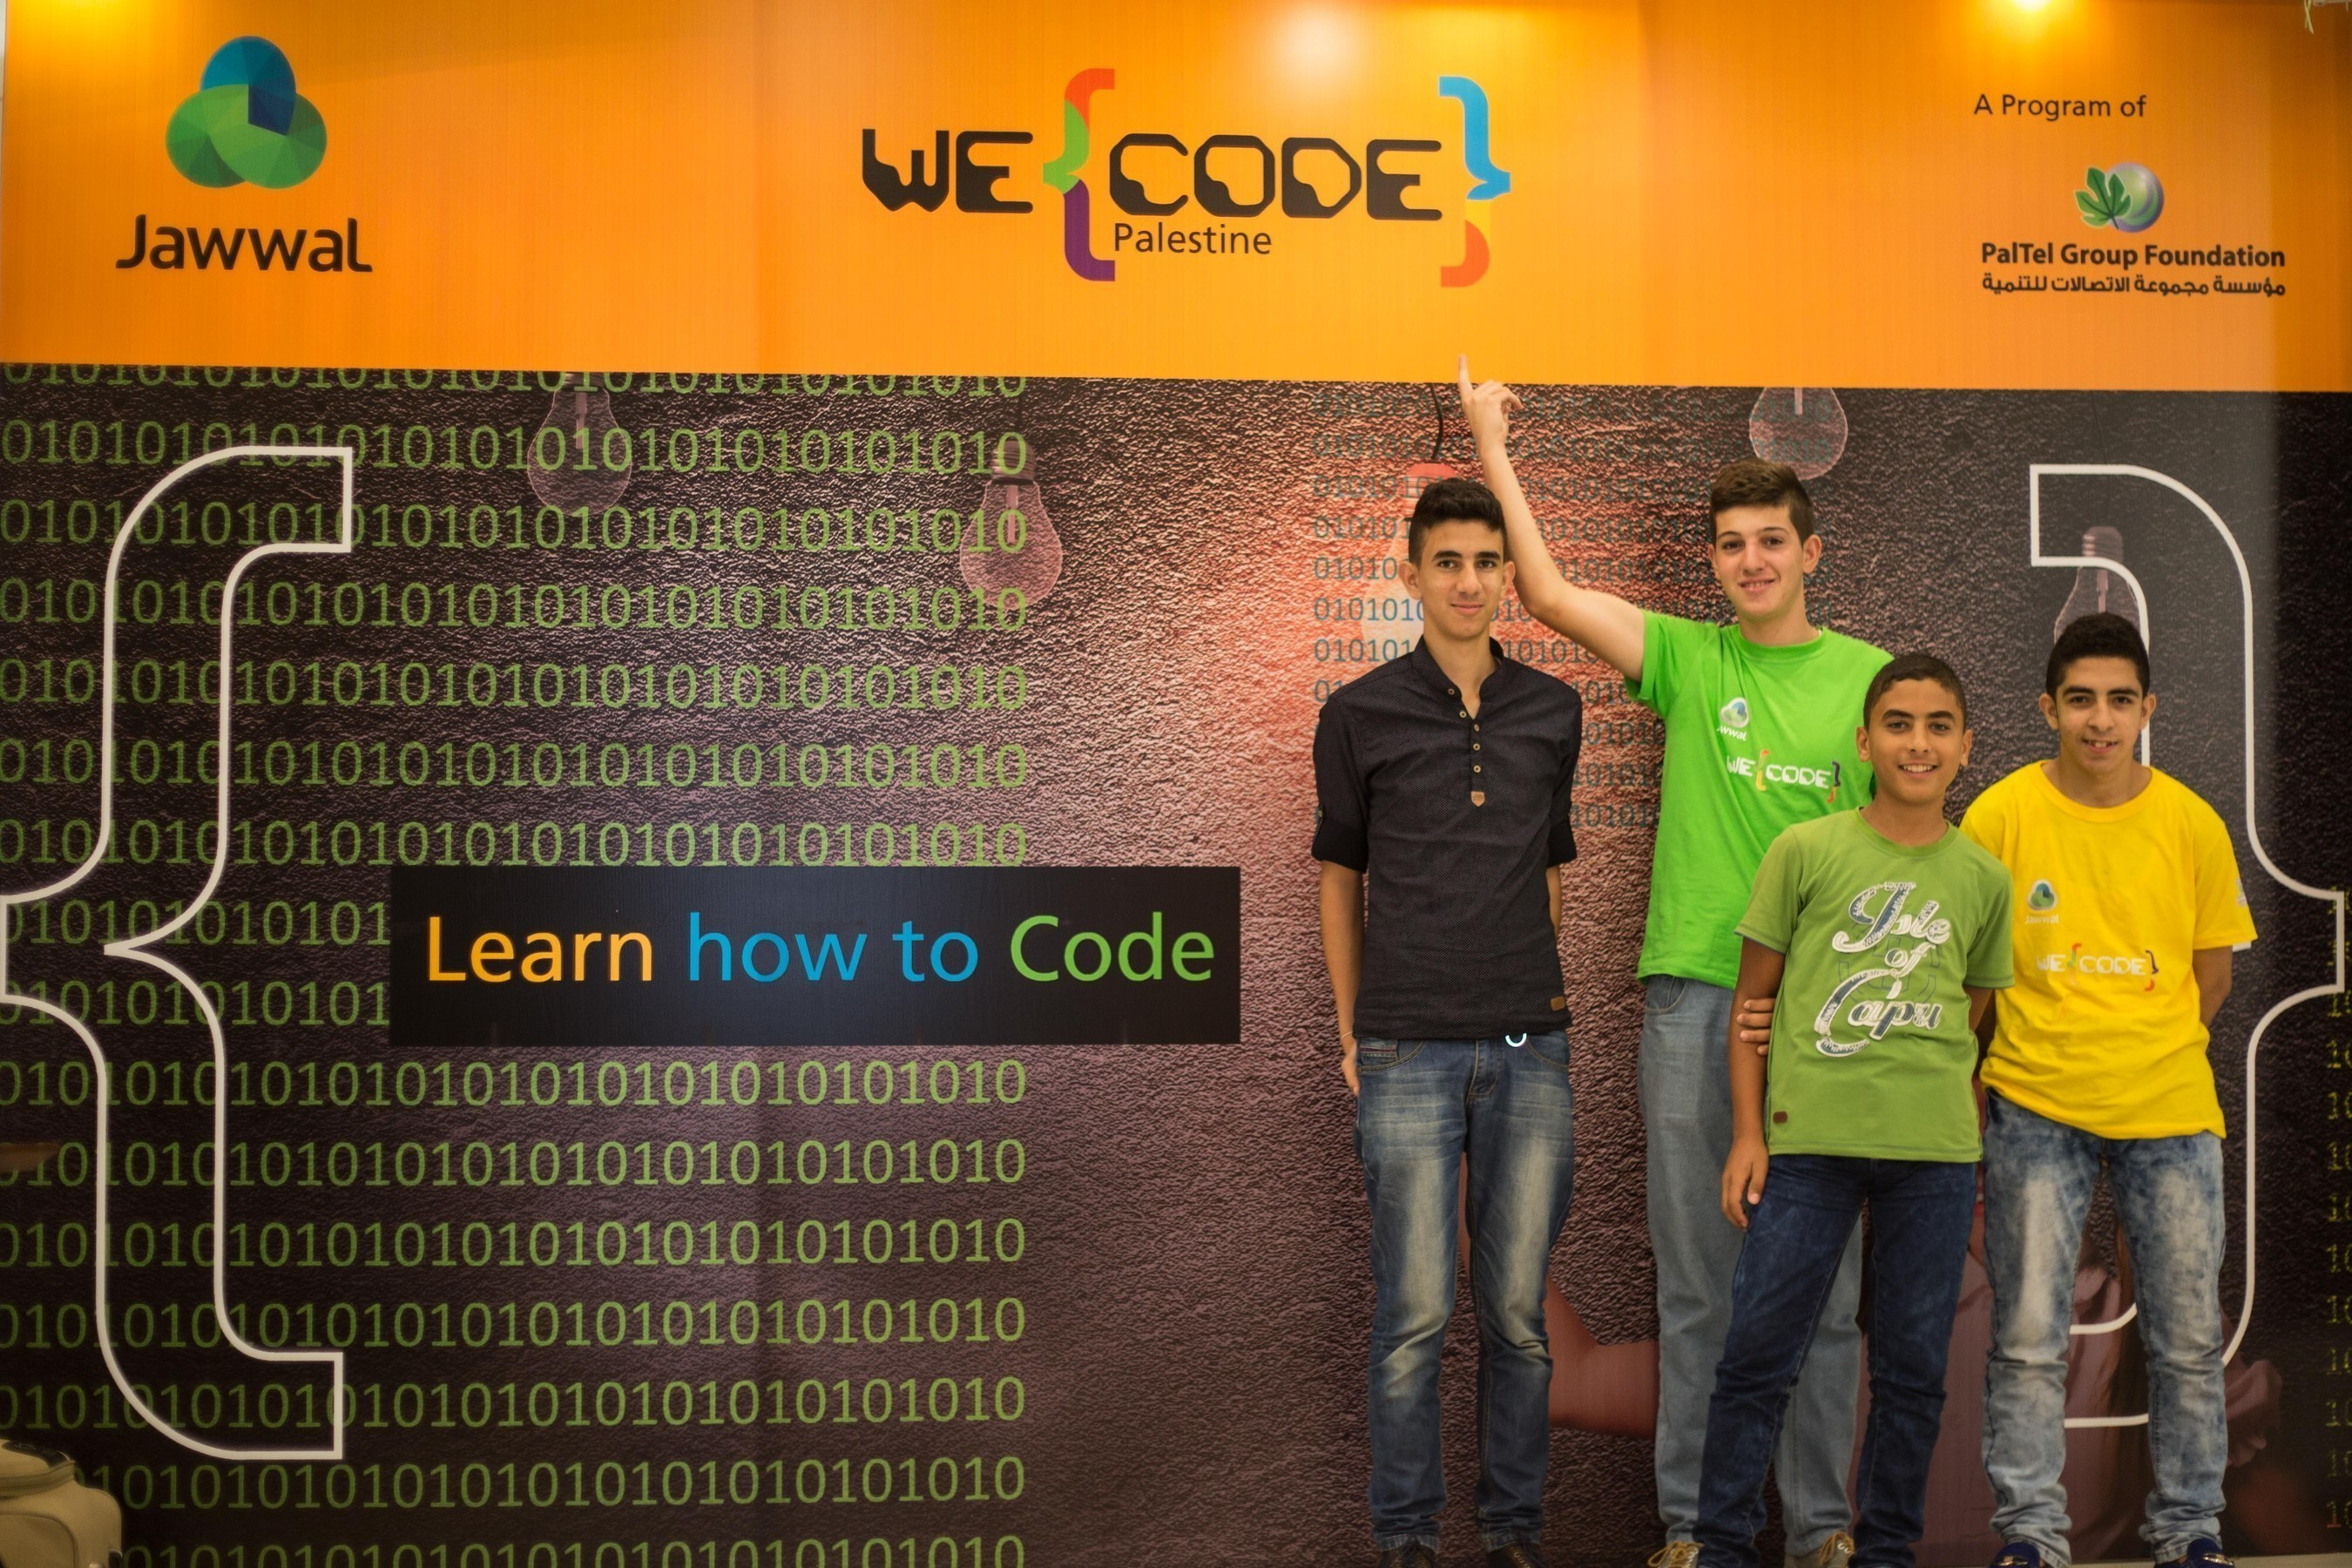 PalTel Group Launched 'Code for Palestine' Program Which Aims to Provide Palestinian Students With a Smarter Future